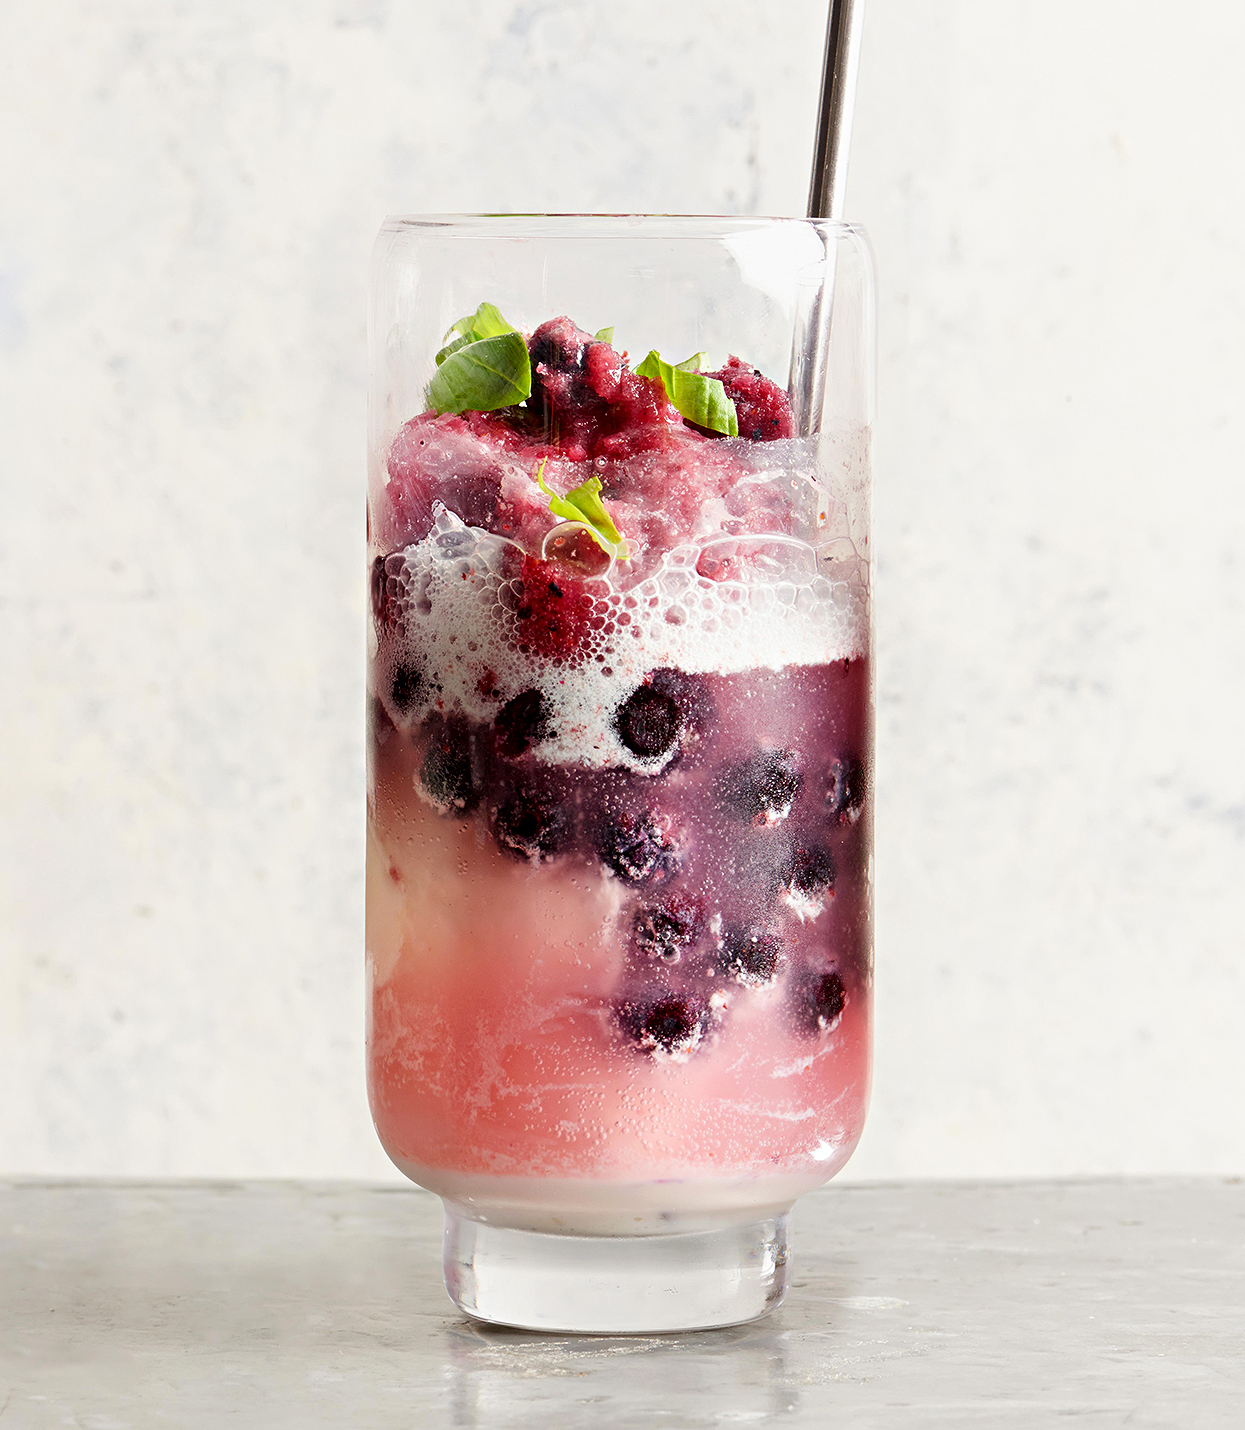 Sparkling Rose Blueberry Floats